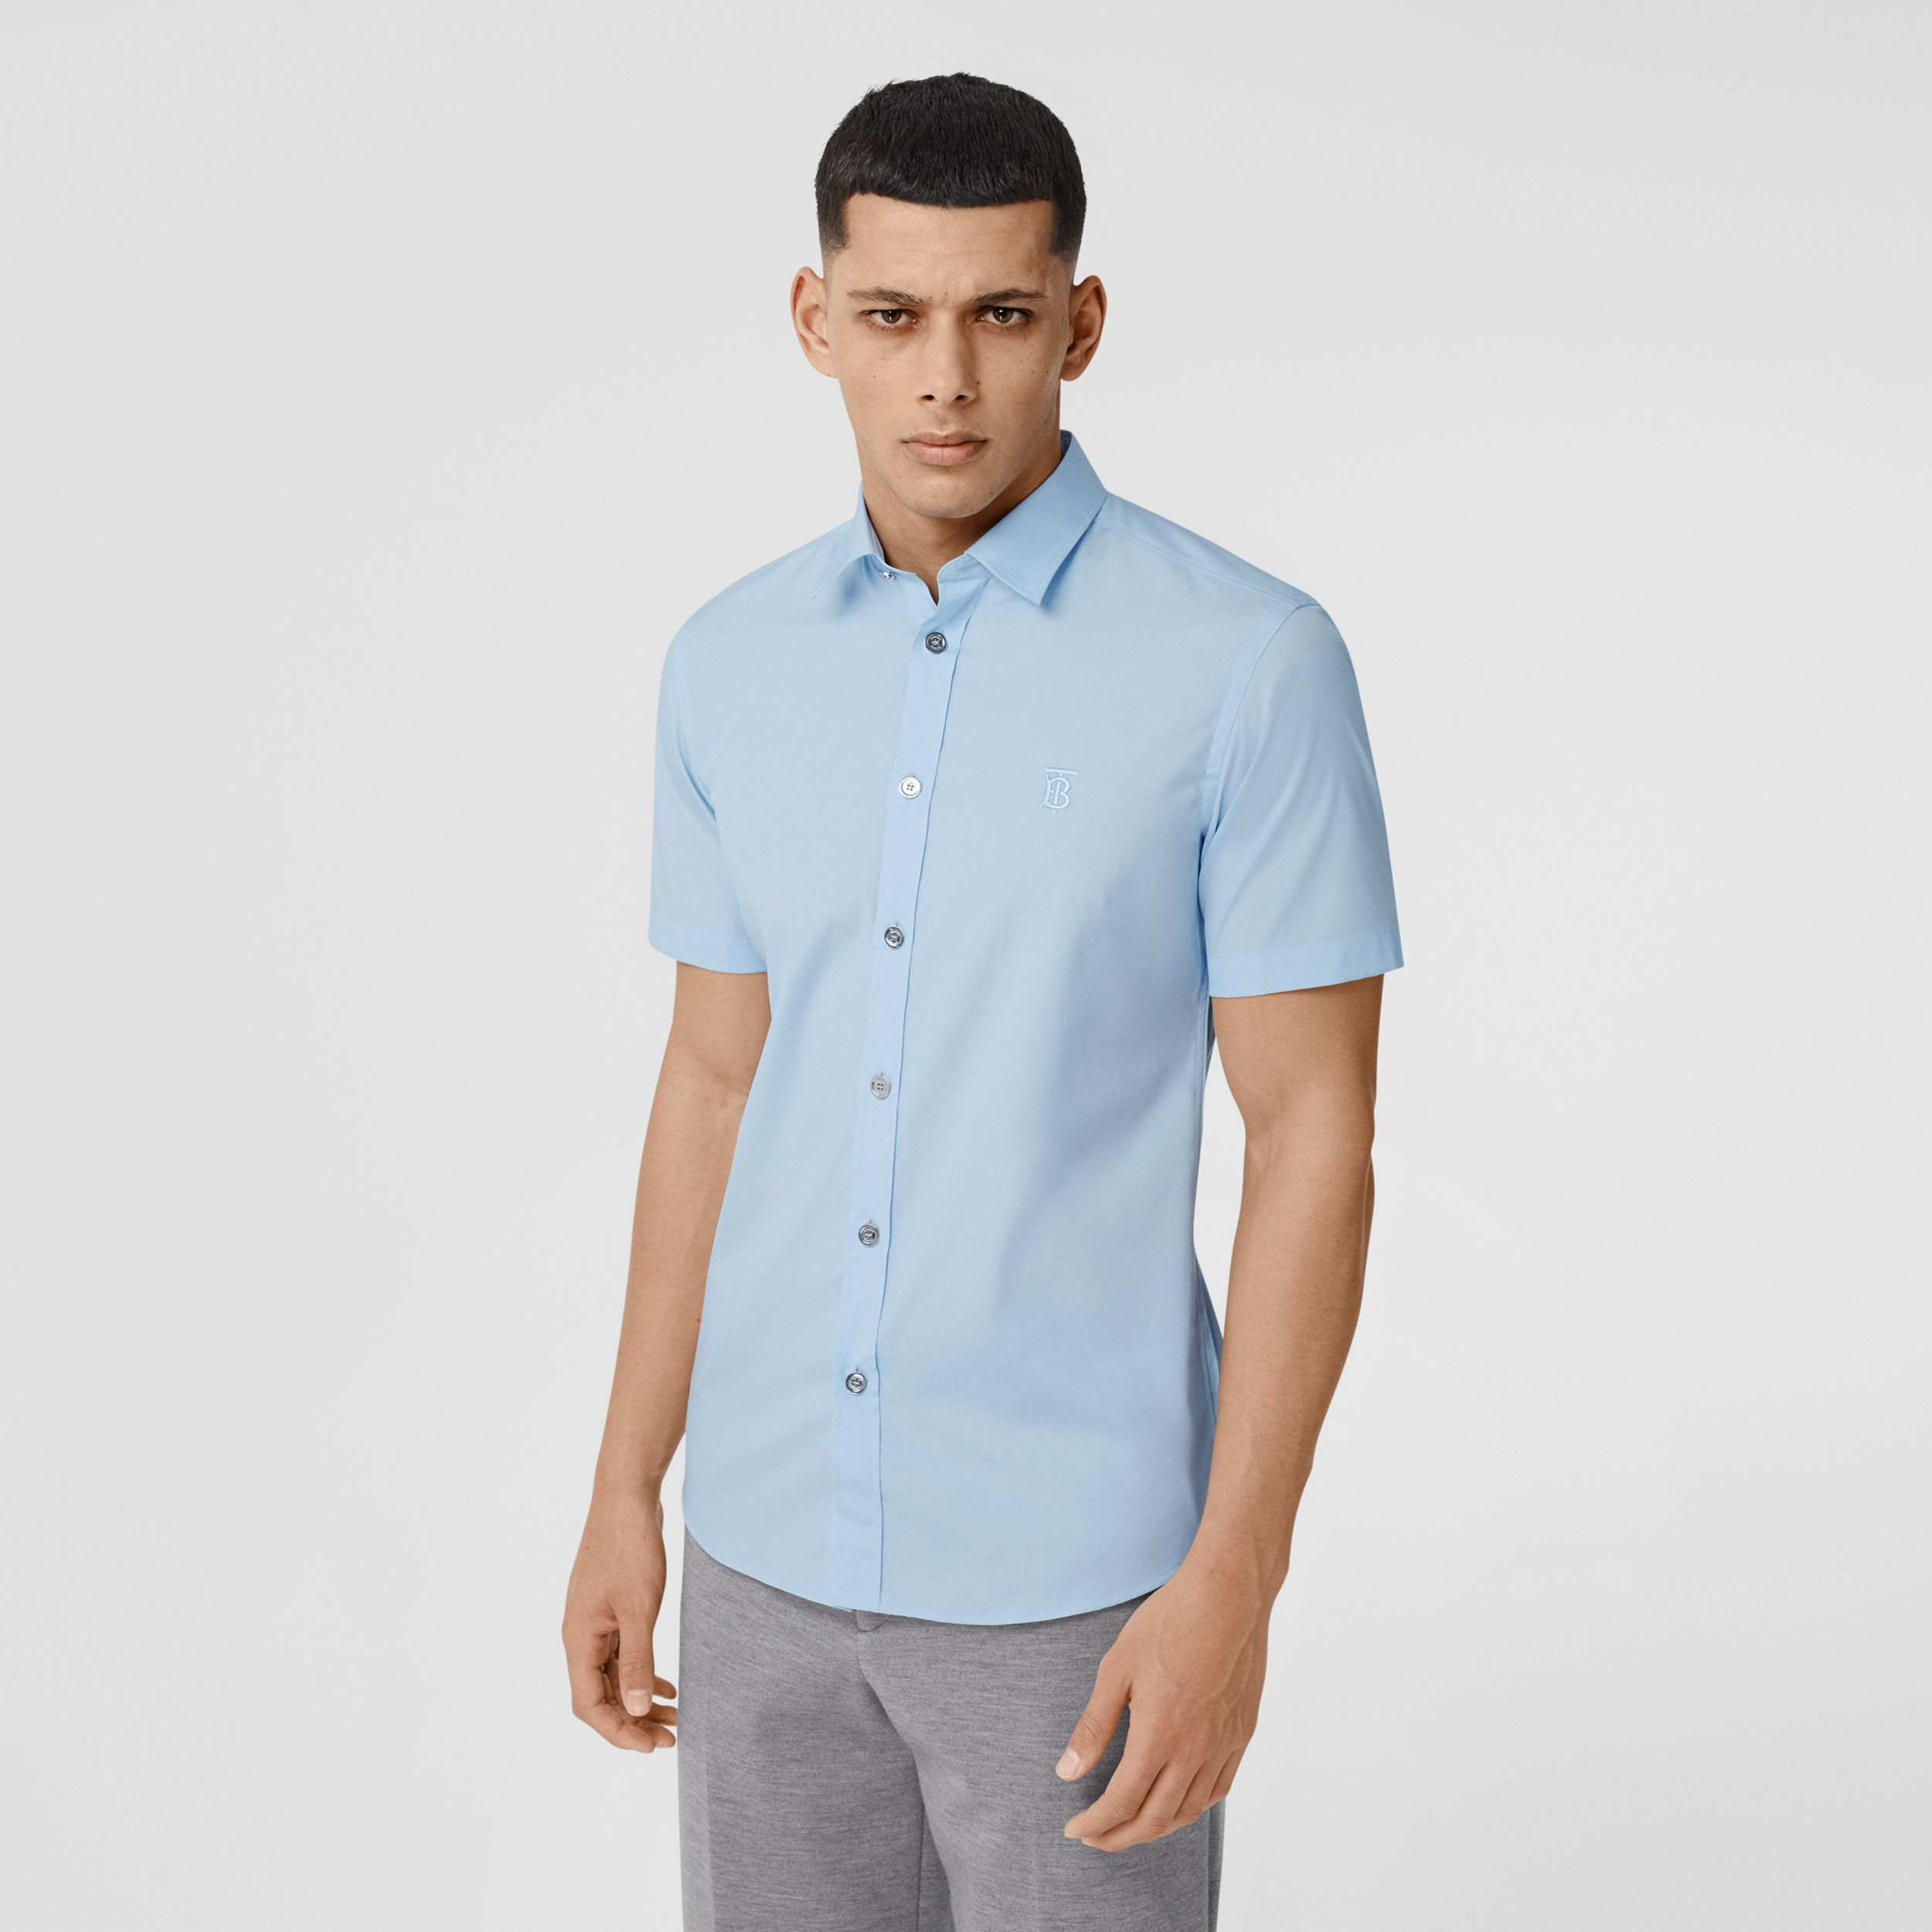 Short-sleeve Monogram Motif Stretch Cotton Shirt in Pale Blue - Men | Burberry Australia - 1